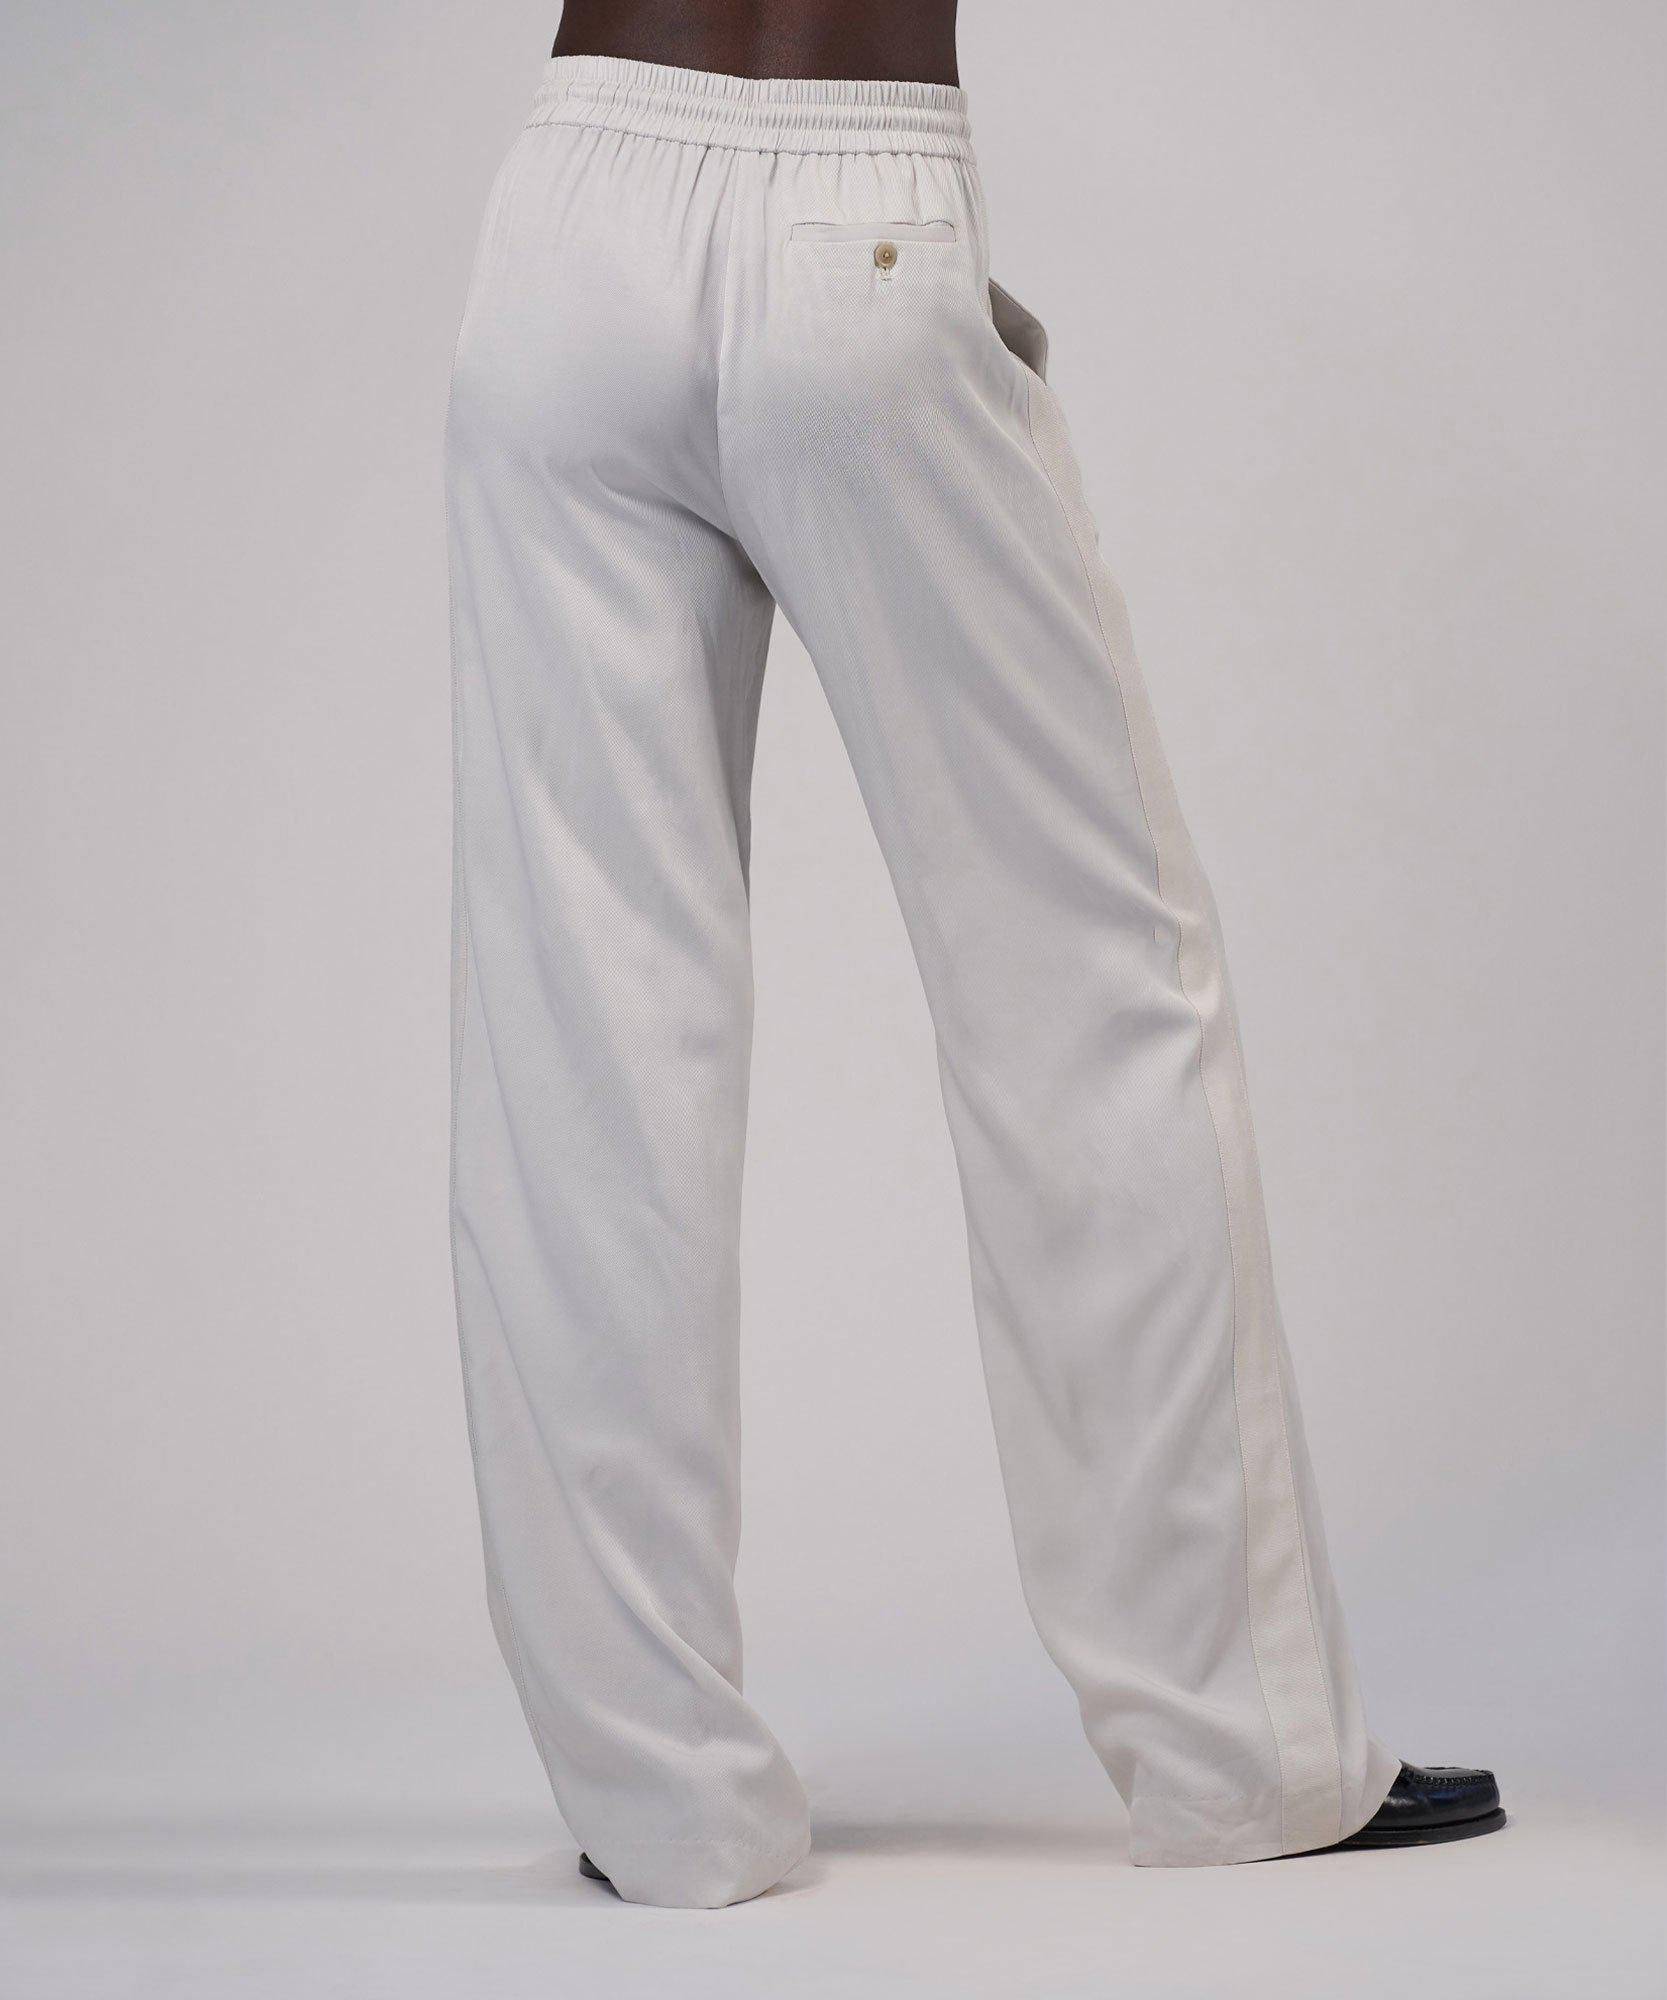 Viscose Twill Wide Leg Pull-On Pant - Gesso 2